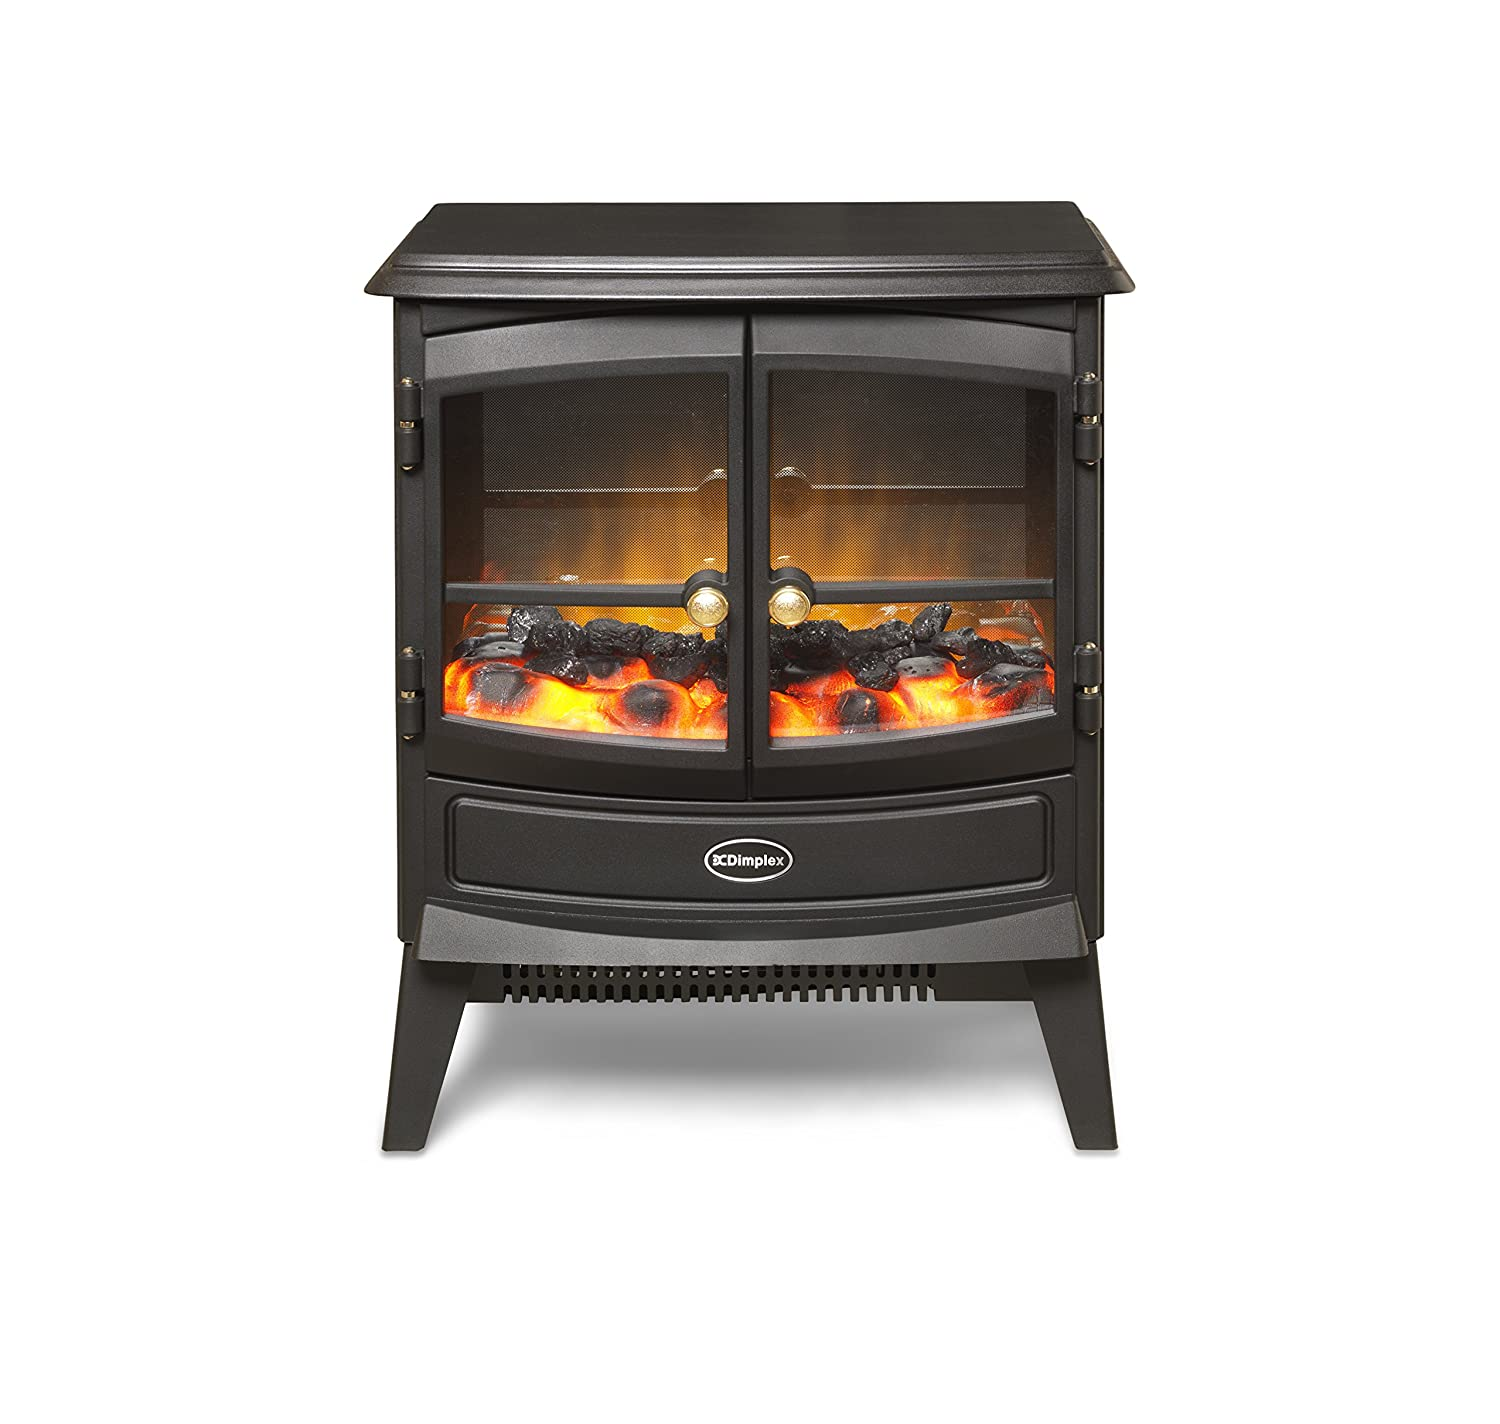 Dimplex 046376 CVL20N Courchevel Electric Stove with Optiflame Effect, 2 kW, 230 W CVL20E